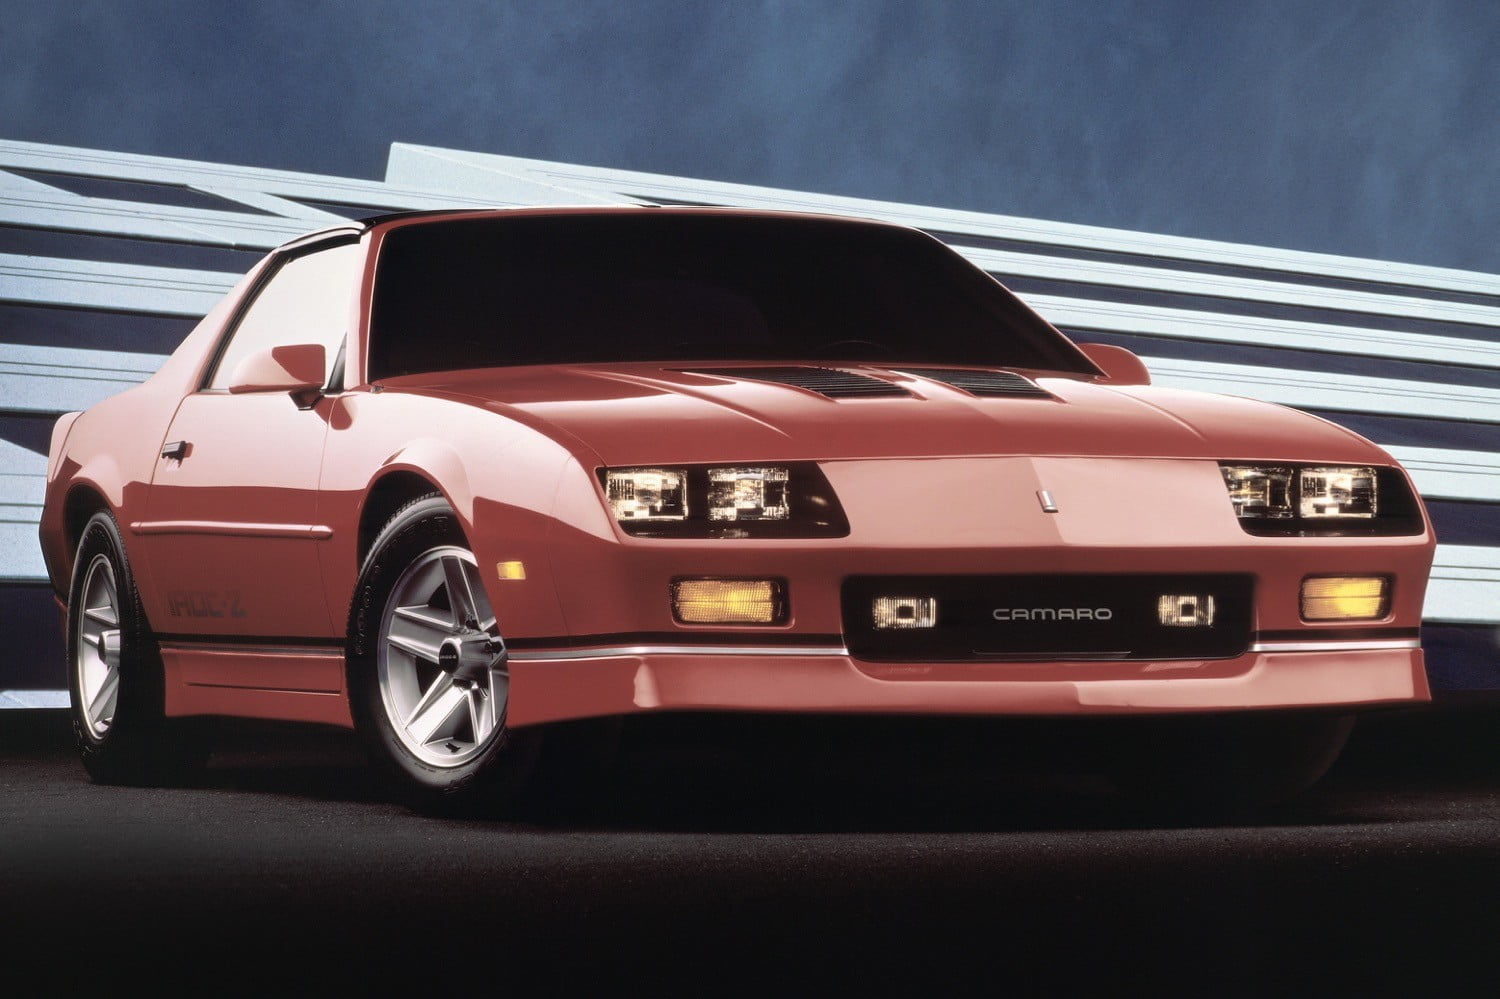 Chevrolet Camaro Iroc Z A Collectible Says Bloomberg Digital Trends